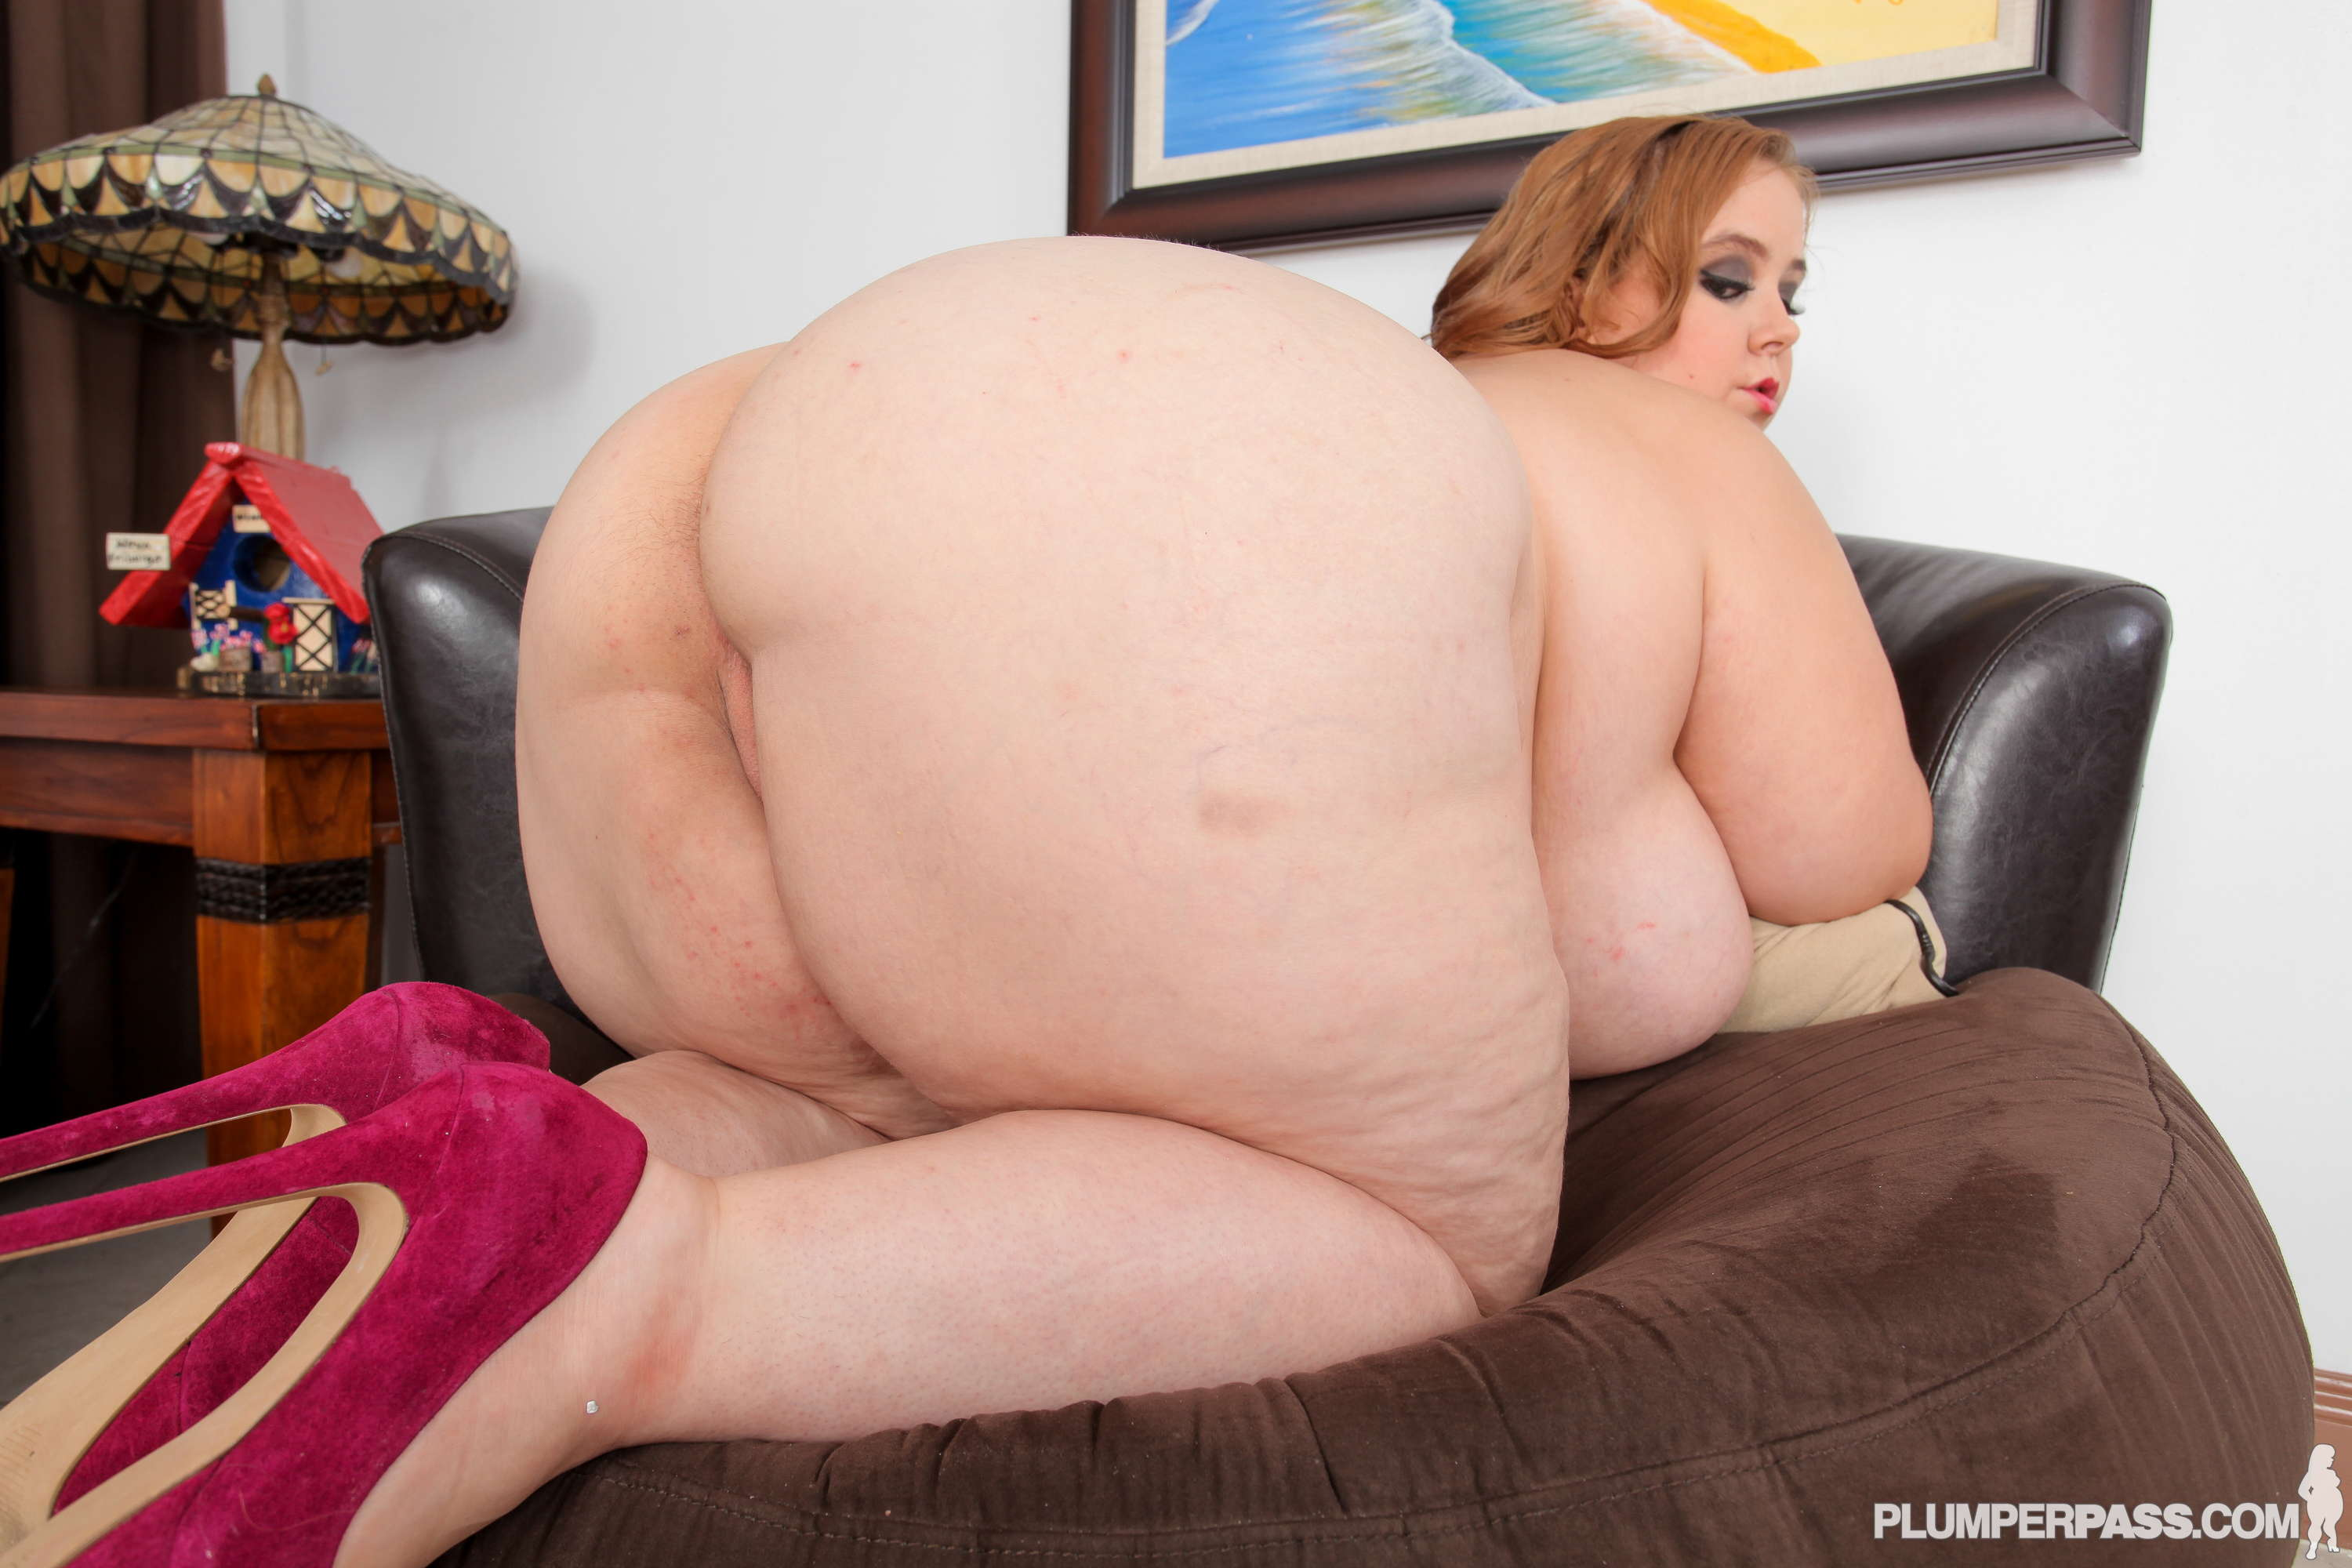 abigaile johnson gif doggystyle sex with rocco